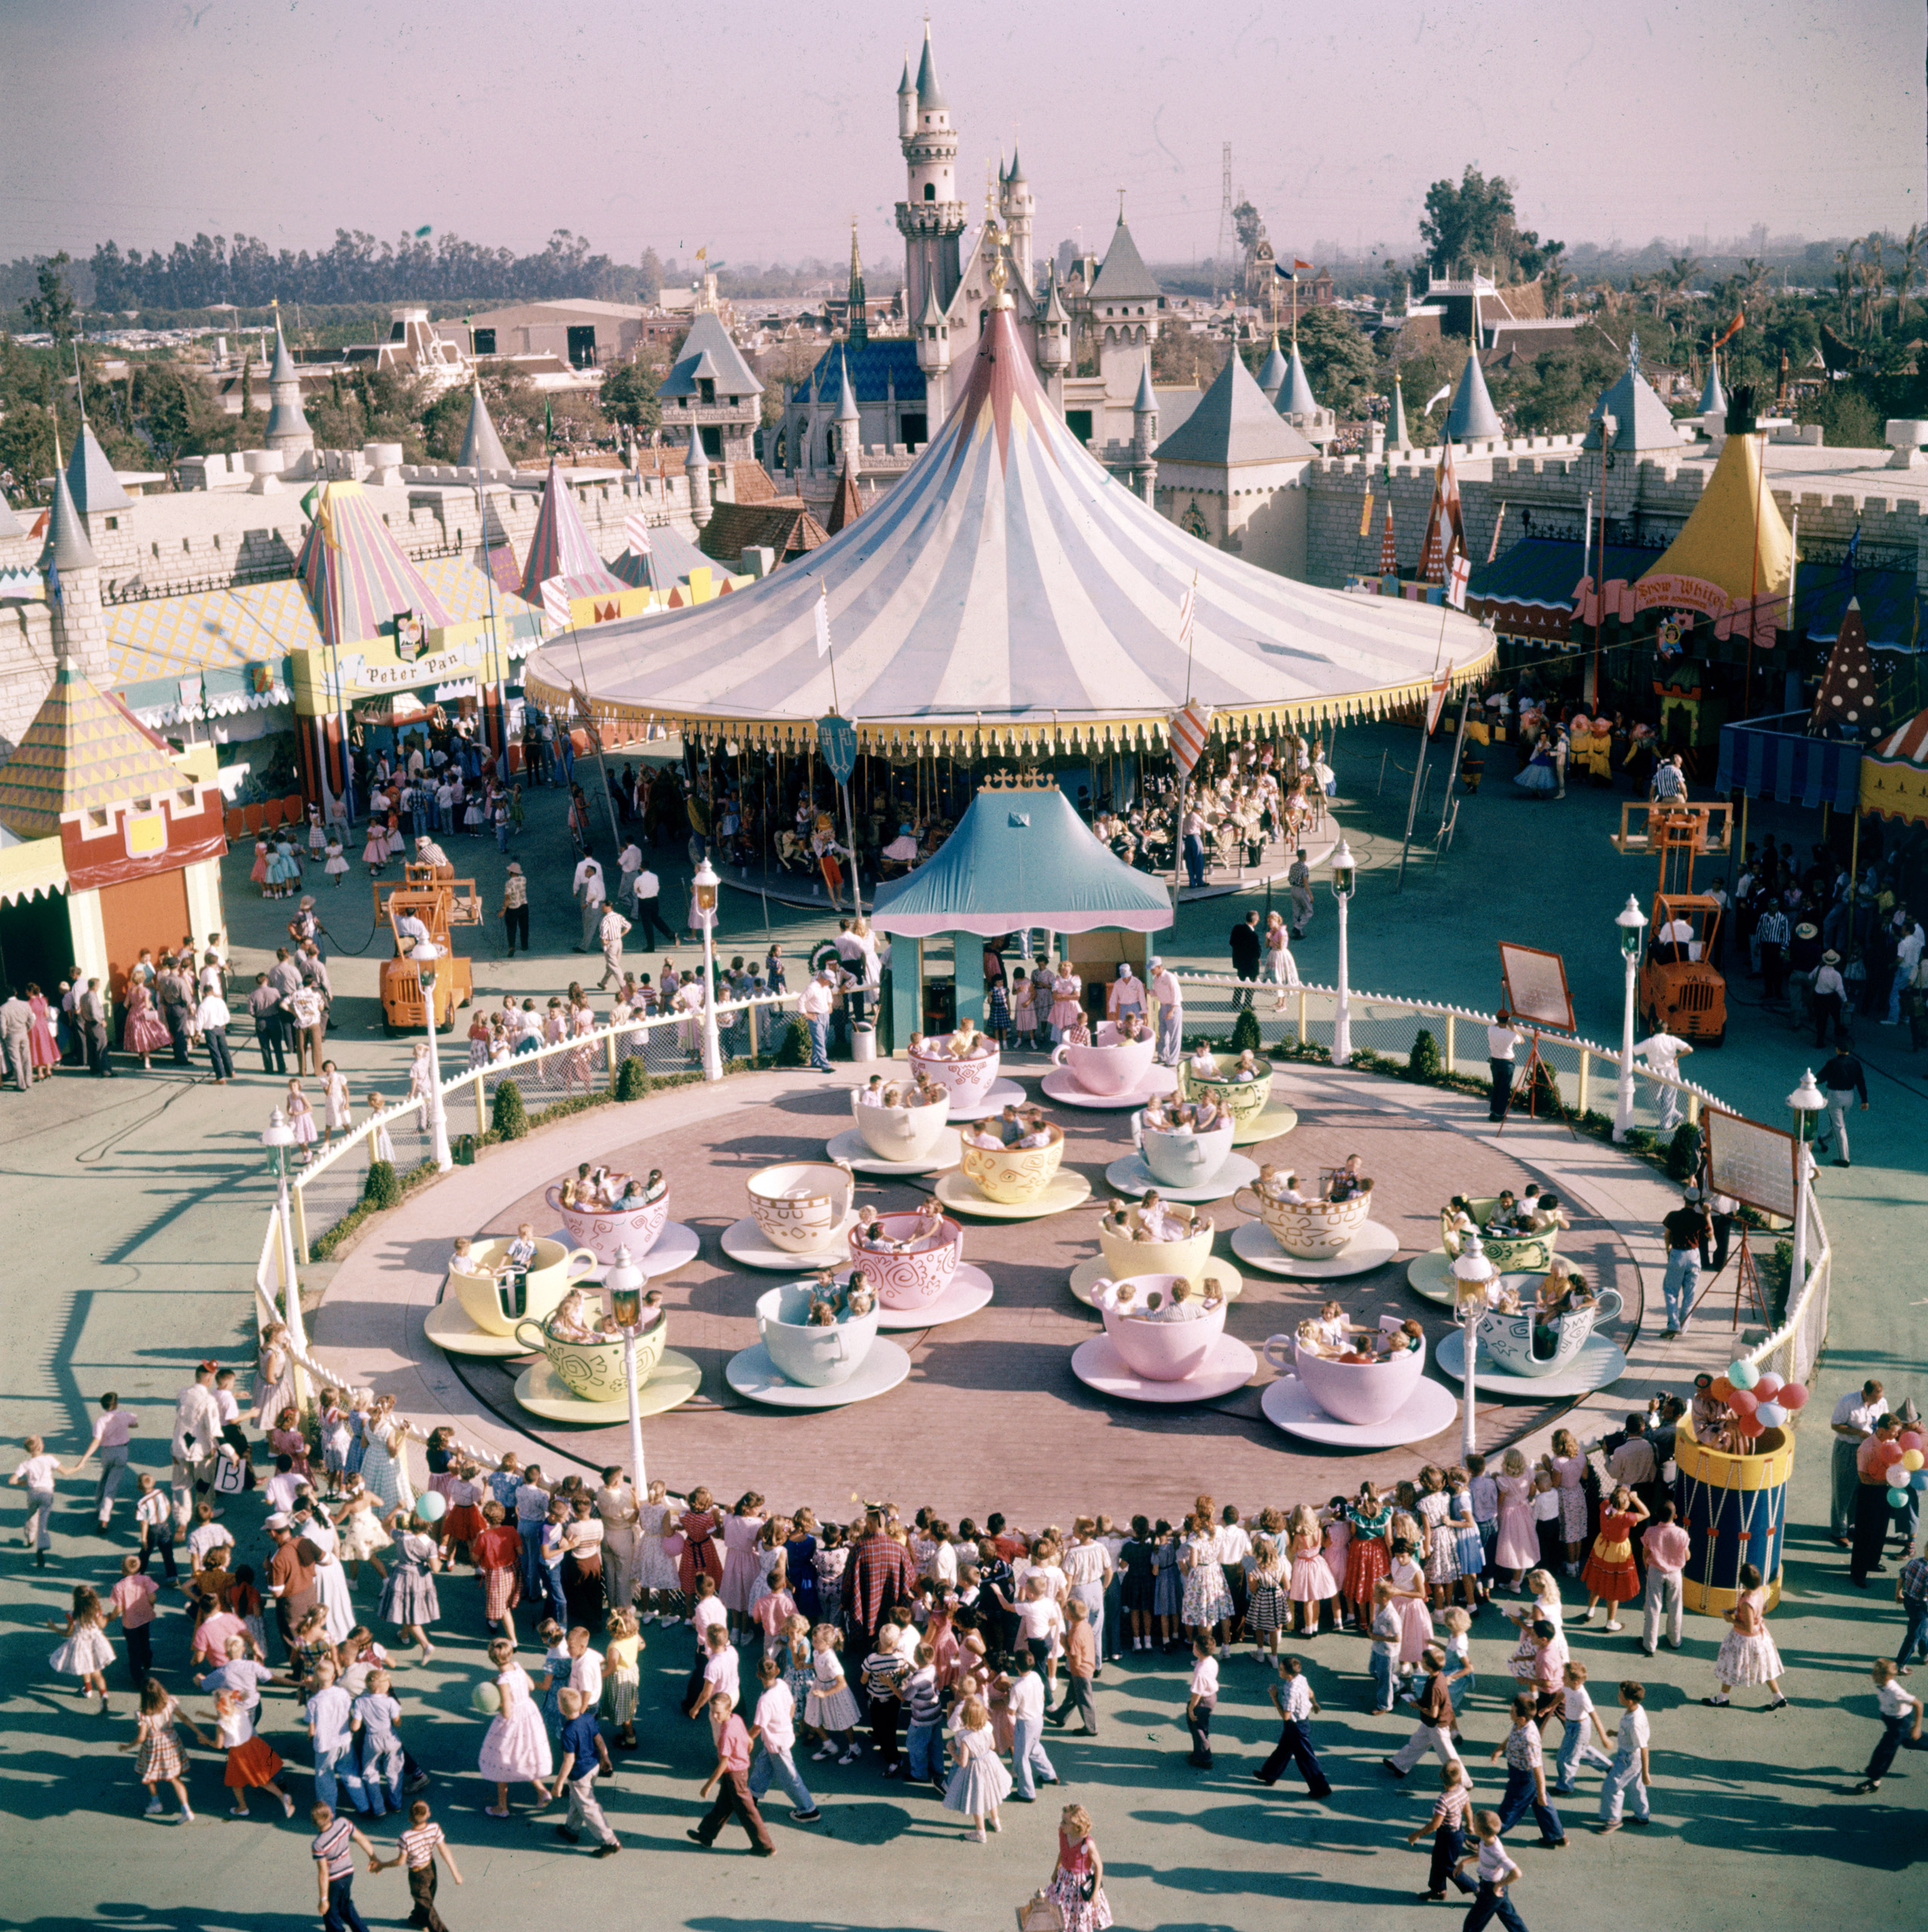 People riding the teacup ride at Disneyland Amusement Park, 1955.